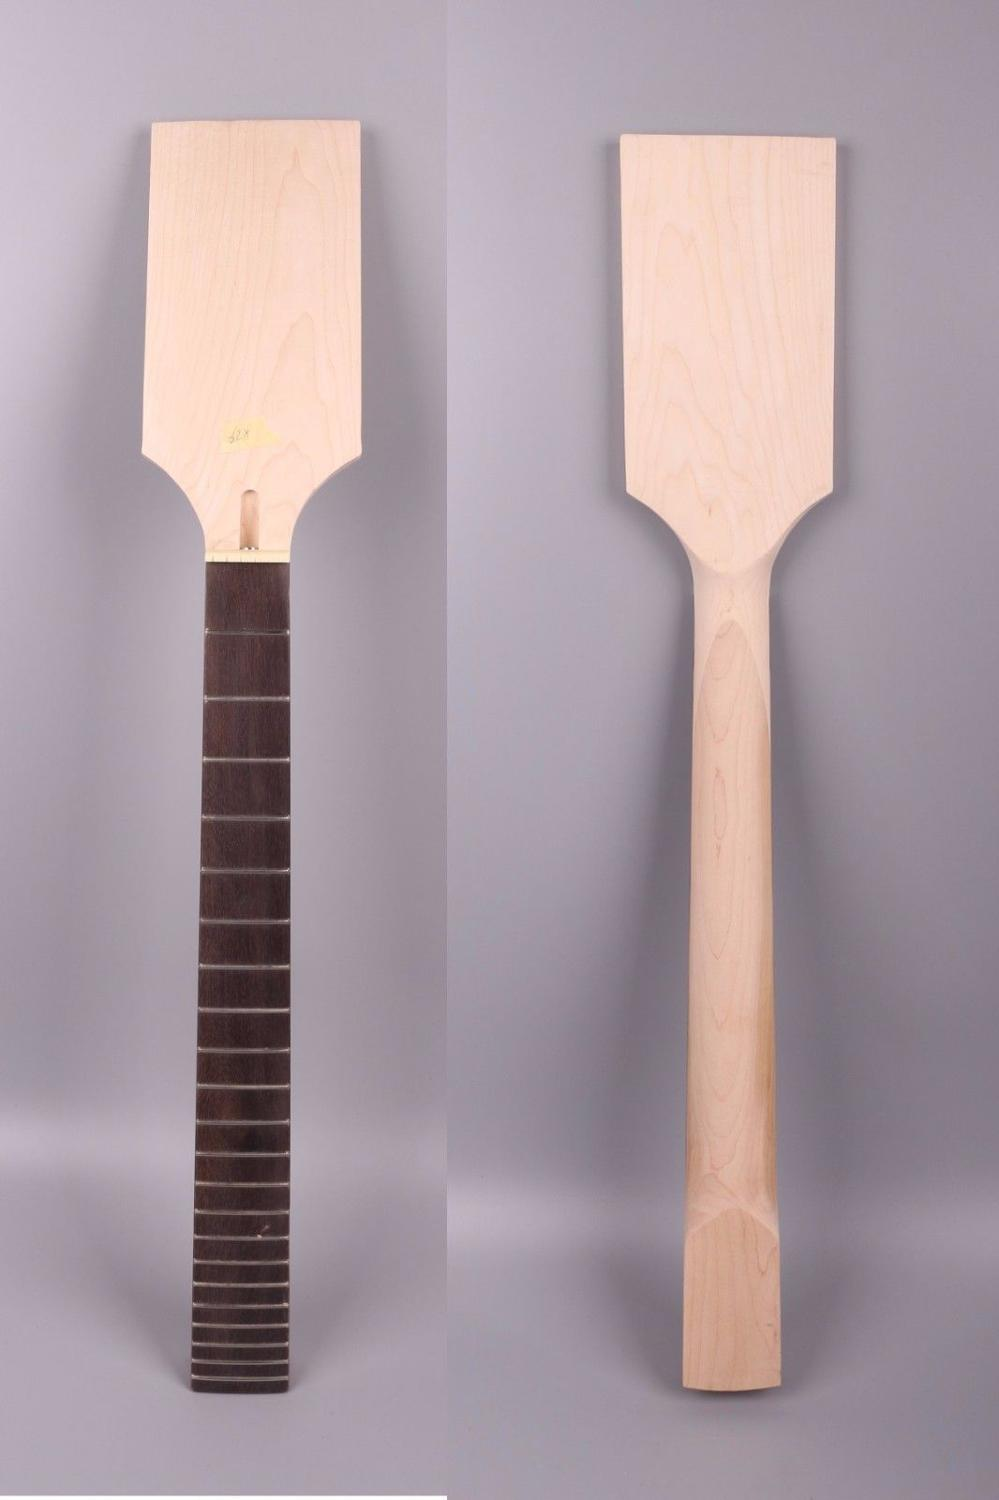 Sports & Entertainment Maple Guitar Neck 22 Fret 25.5 Inch Rosewood Fretboard Paddle Head Strat Jackson Moderate Price